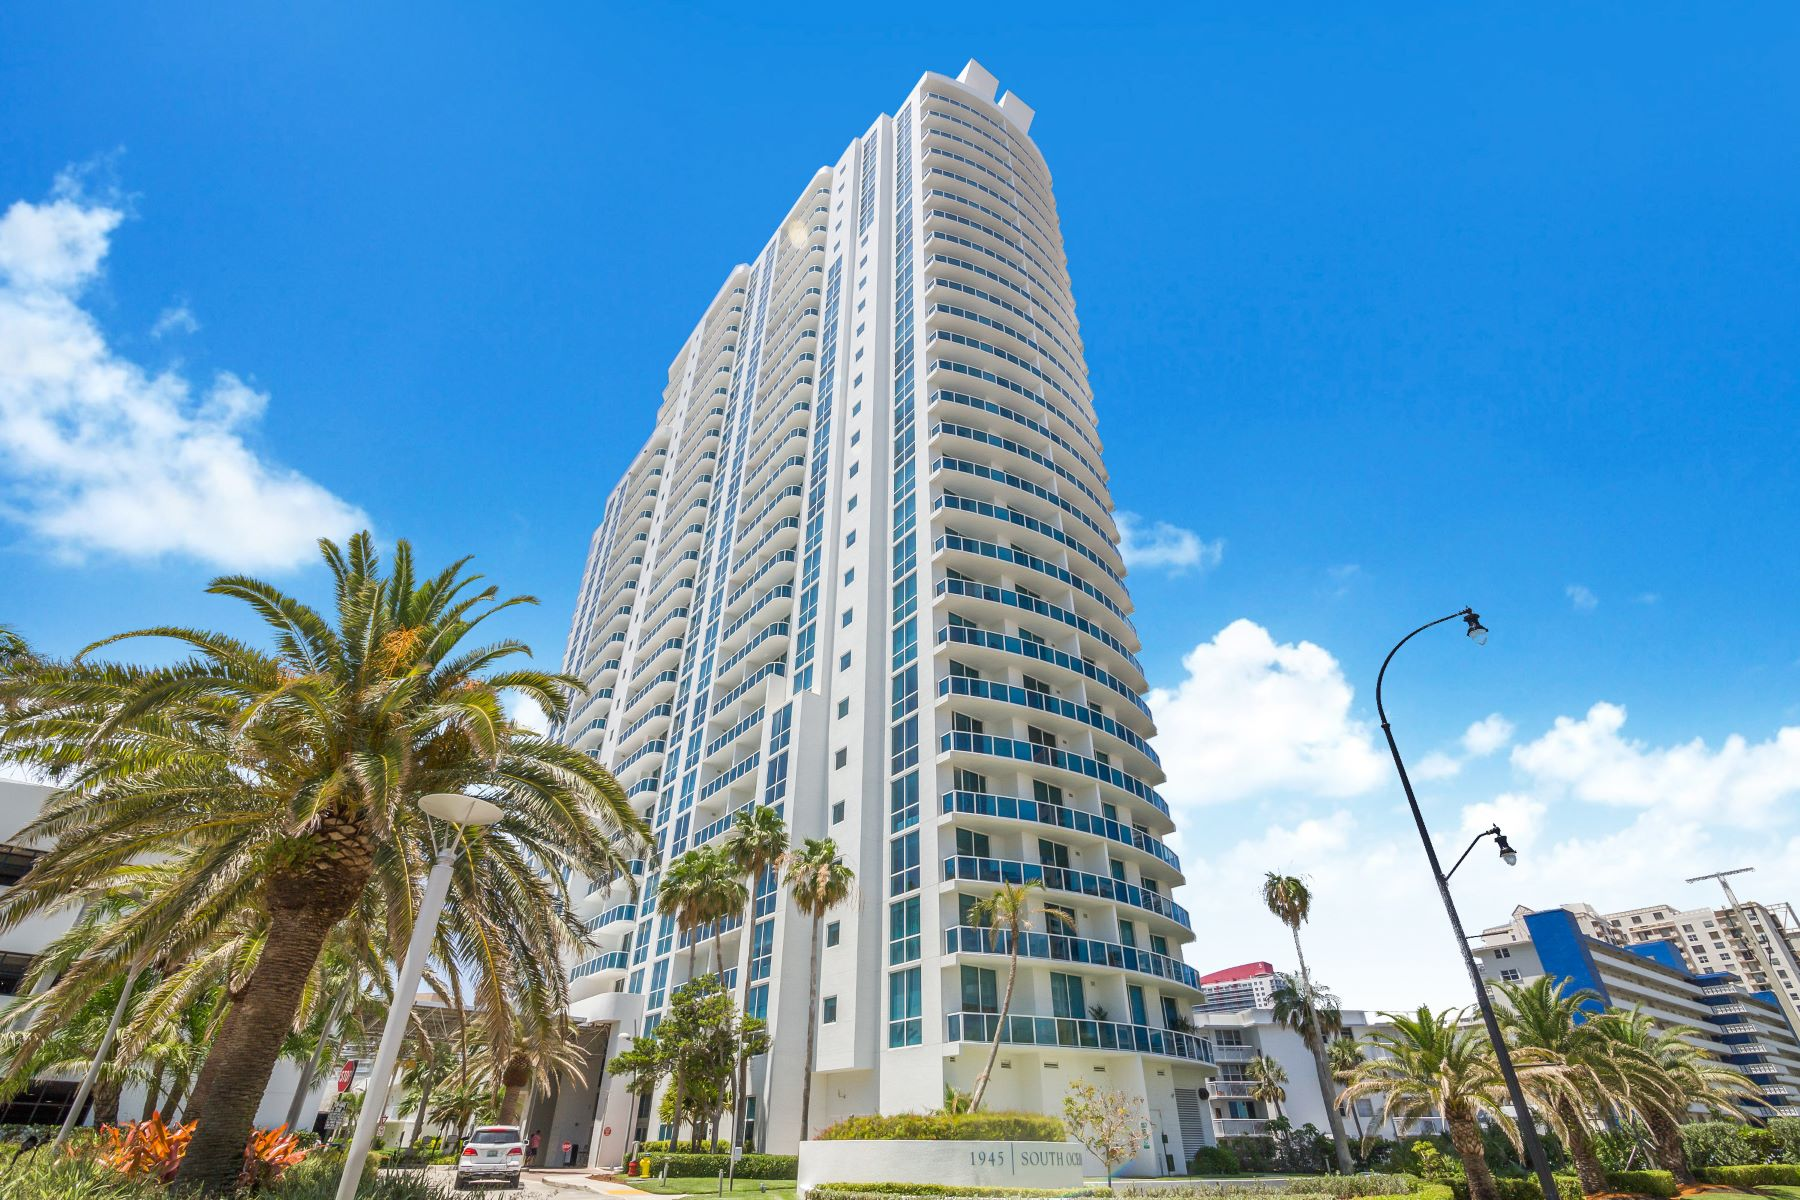 Condominiums for Sale at Beach Property on the Intracoastal Waterways Florida 1945 S Ocean Dr 605 Hallandale, Florida 33009 United States